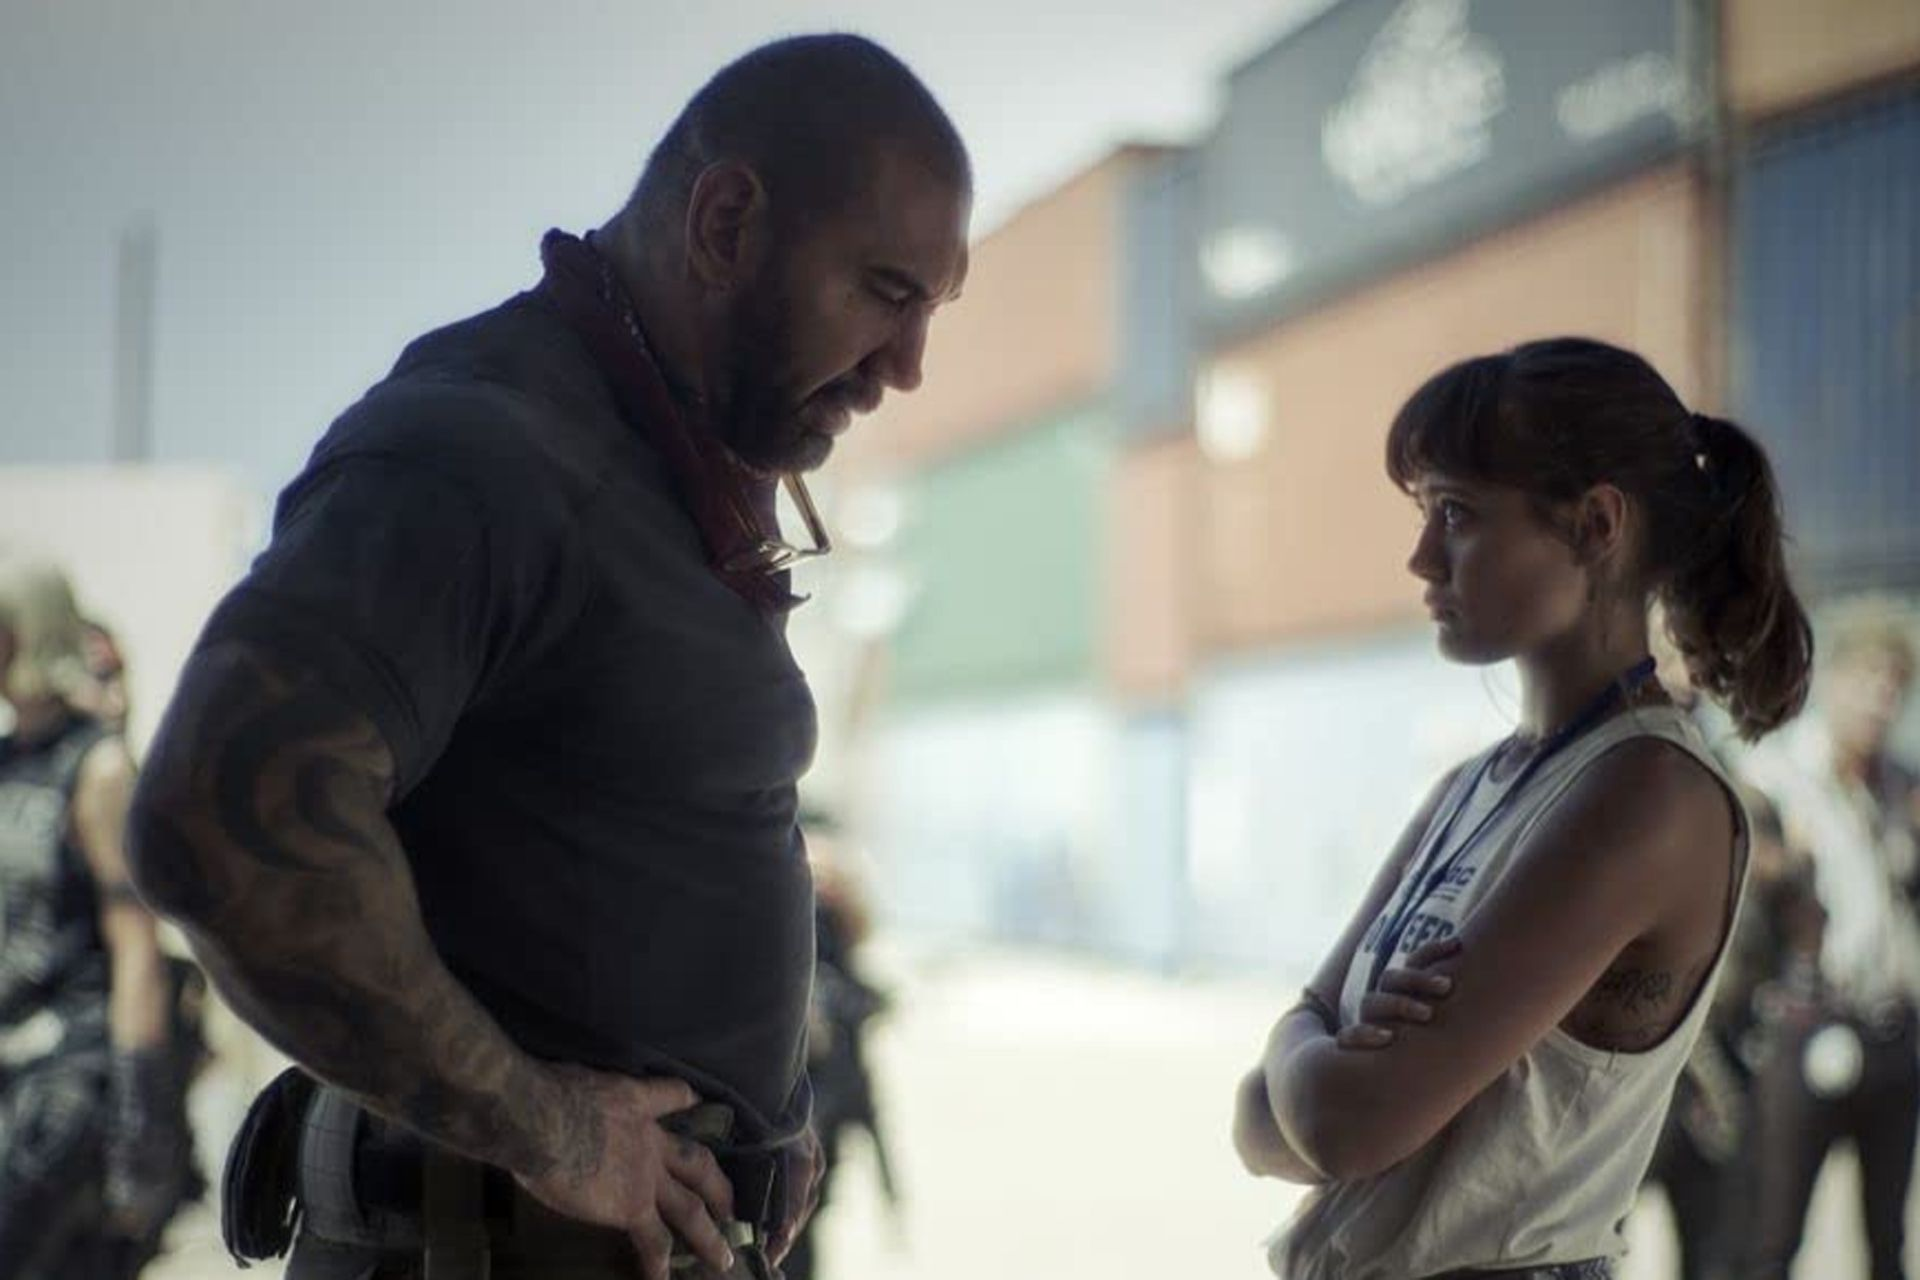 Dave Bautista and Ella Purnell, in a scene from Army of the Dead